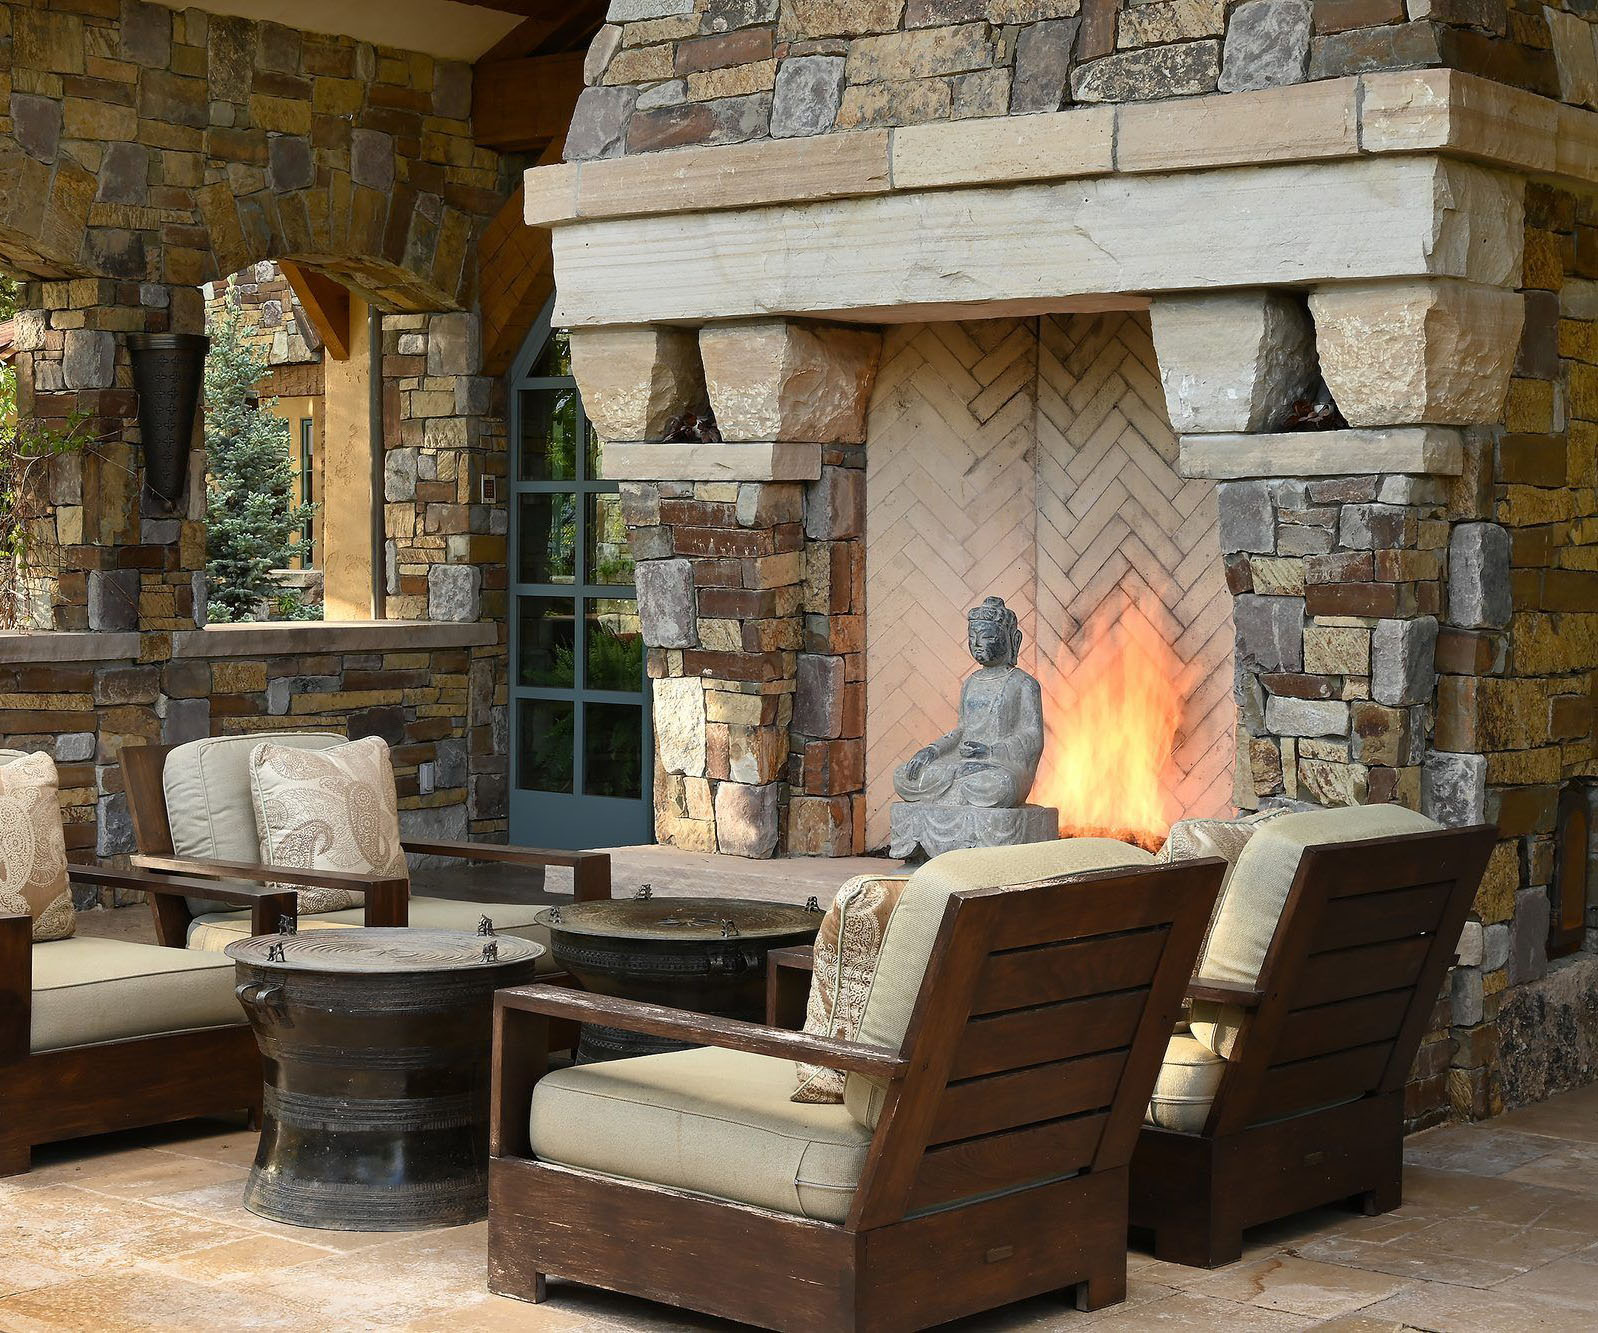 Bohemian inspired outdoor wood burning fireplace design featuring warm colored real stone, a raised stone hearth and thick stone top shelf.